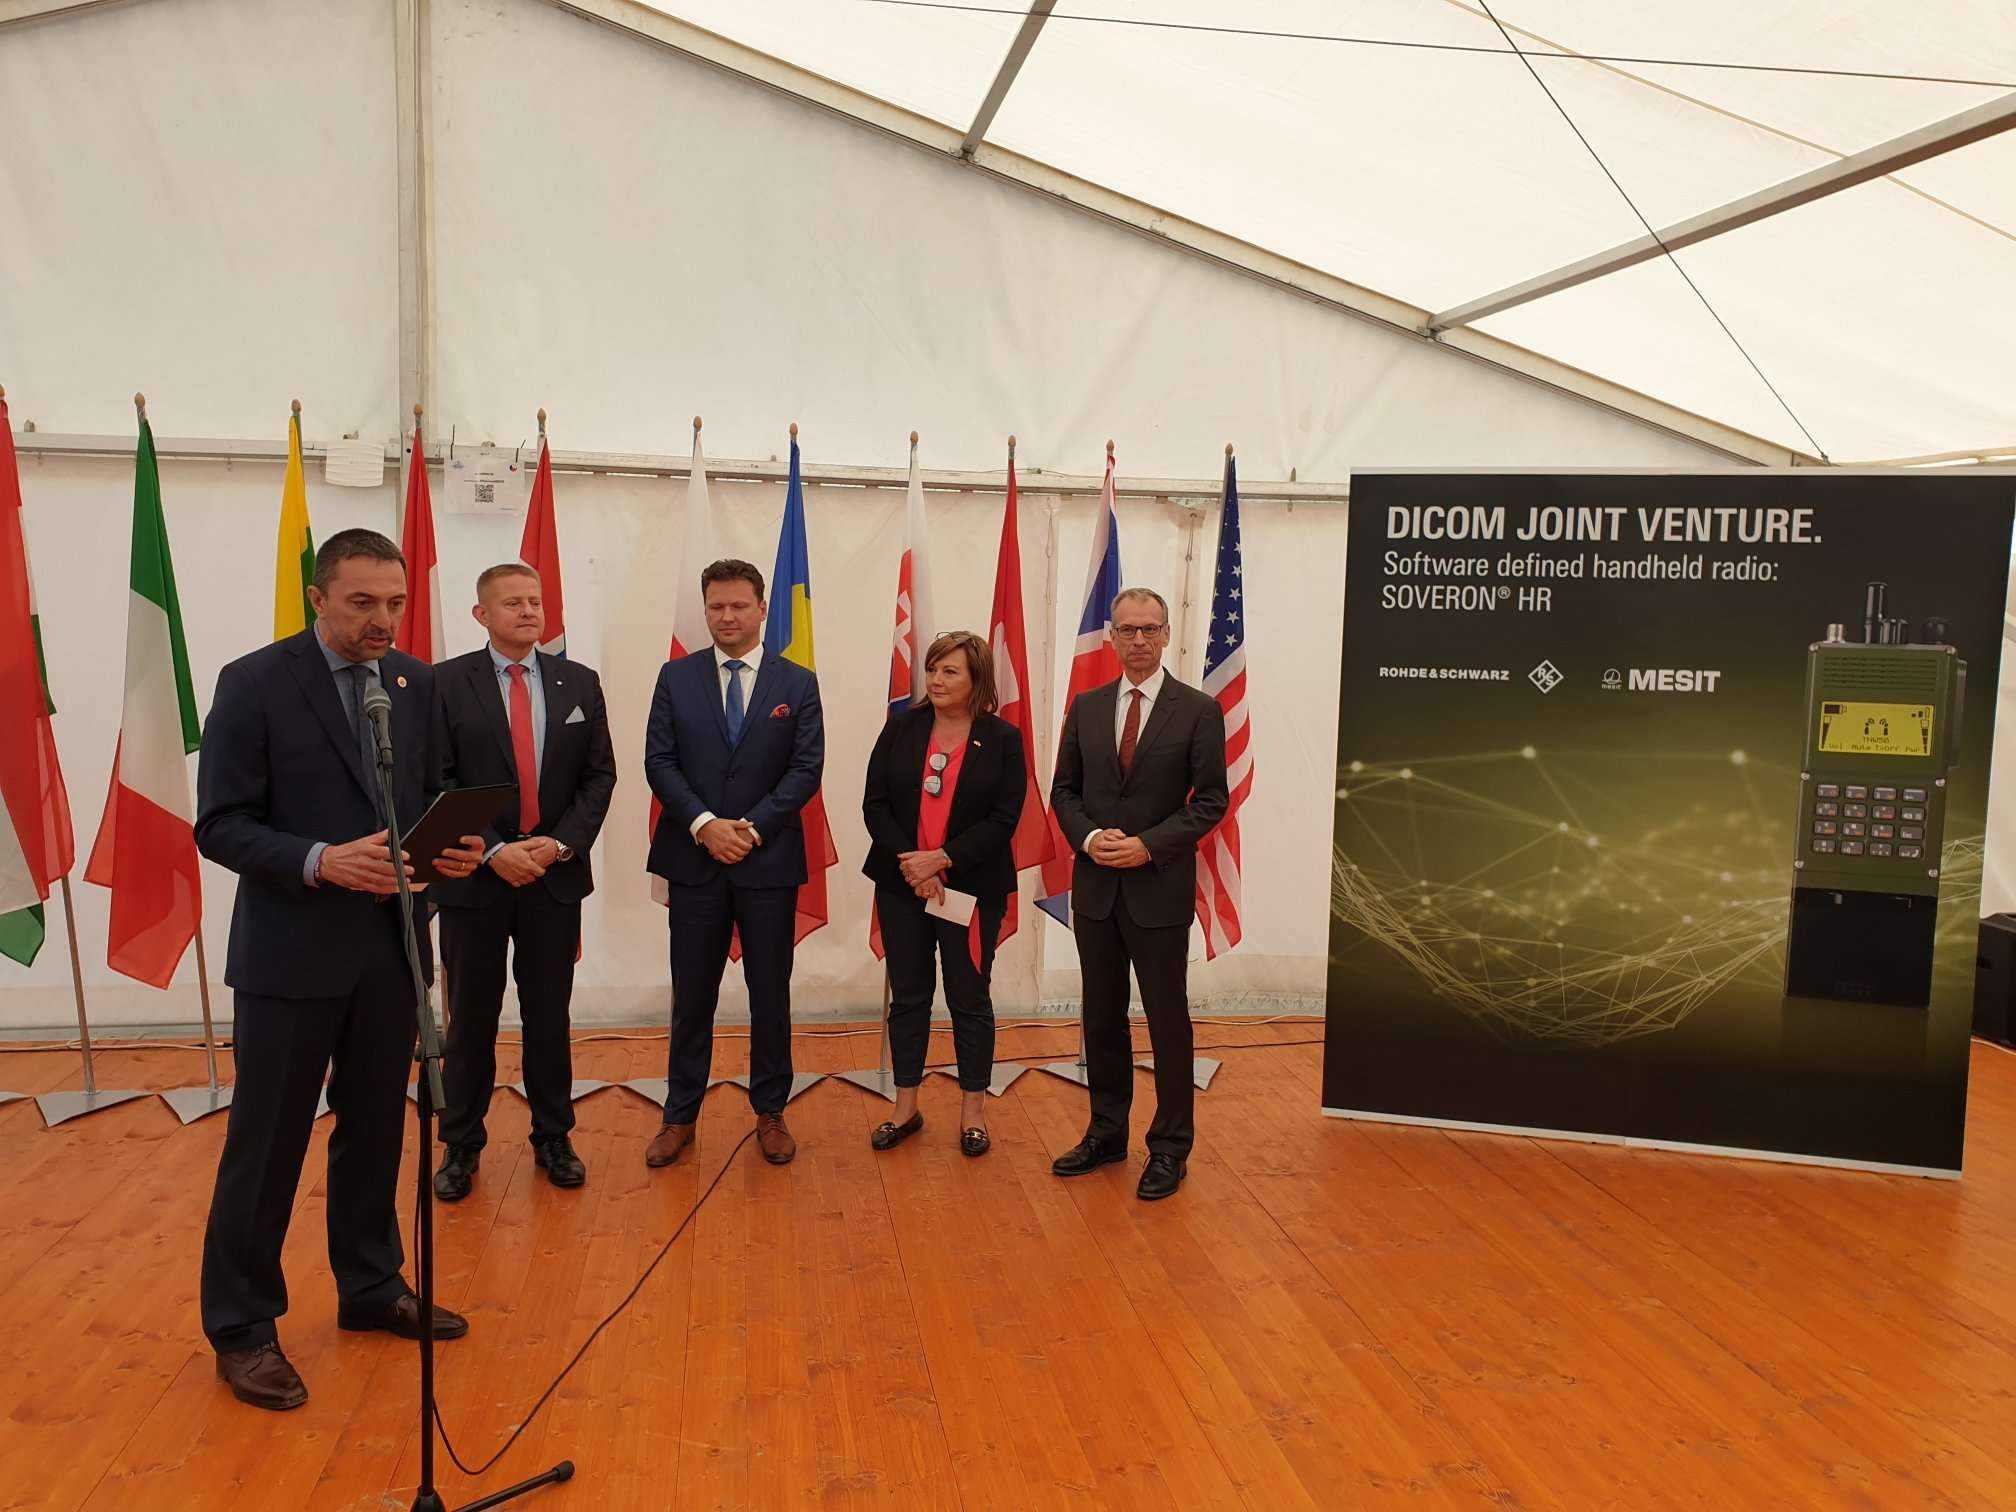 NATO Day Ostrava, Czech Republic DICOM Joint venture Presentation Image 2